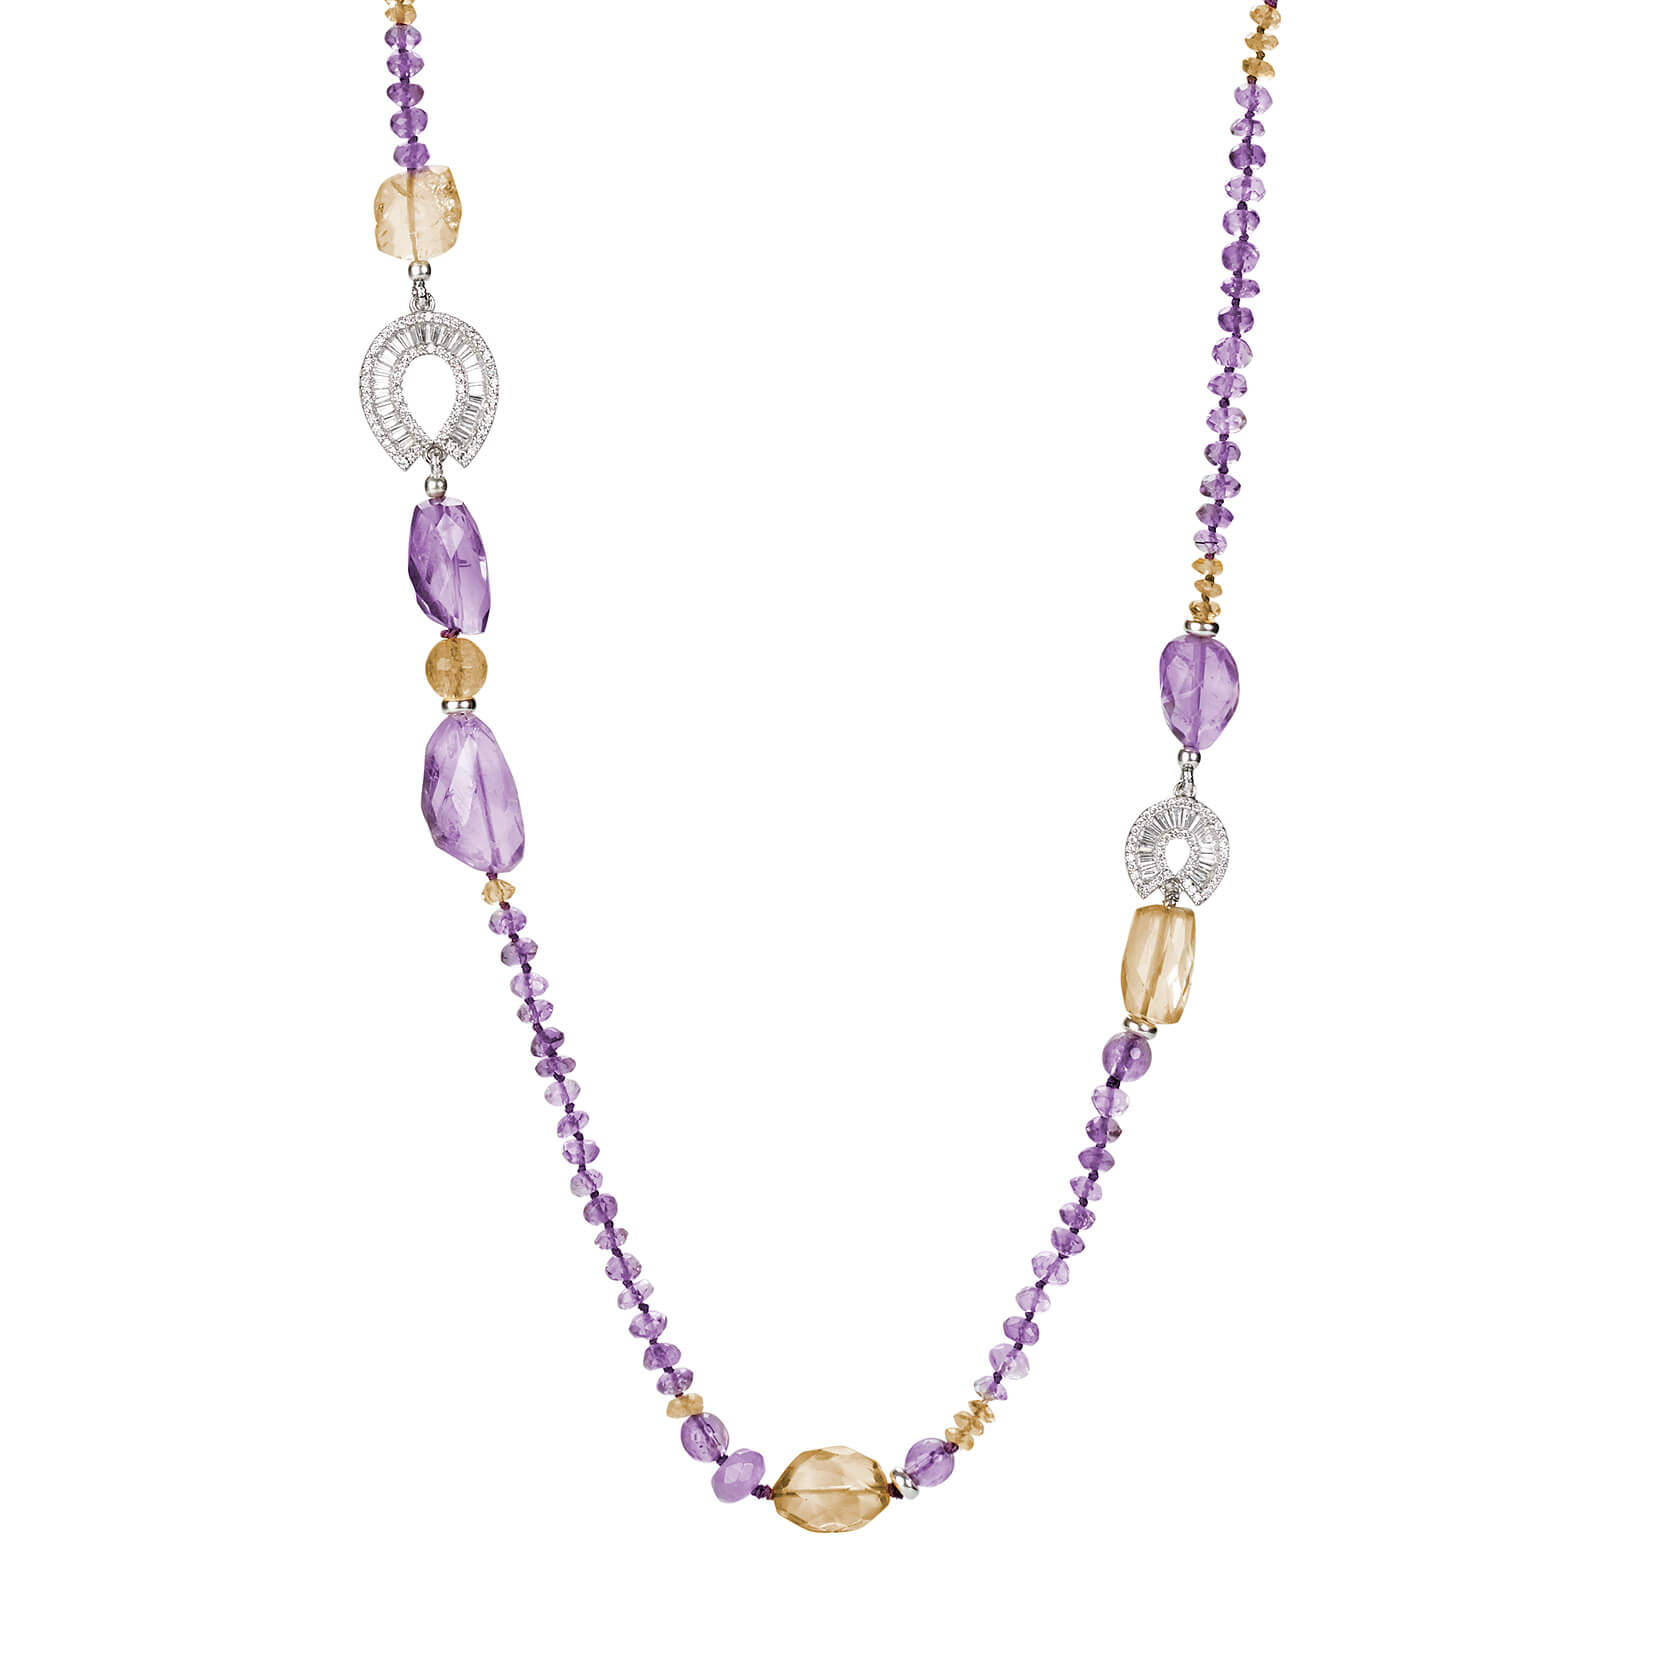 Citrine and amethyst long necklace